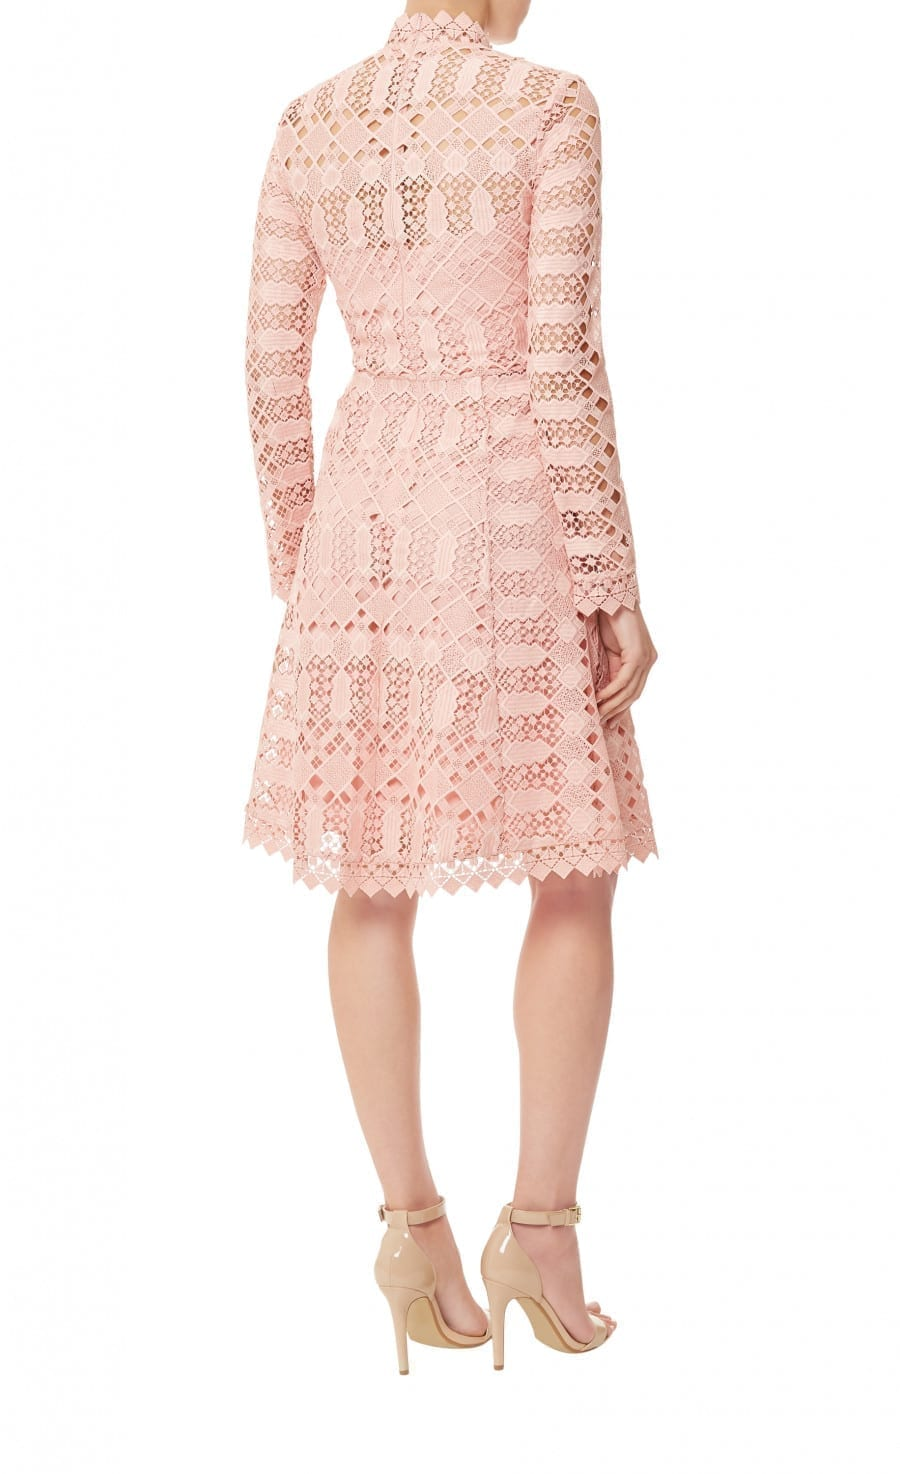 49ce8592 TEMPERLEY LONDON Amelia Lace Pink Dress - We Select Dresses